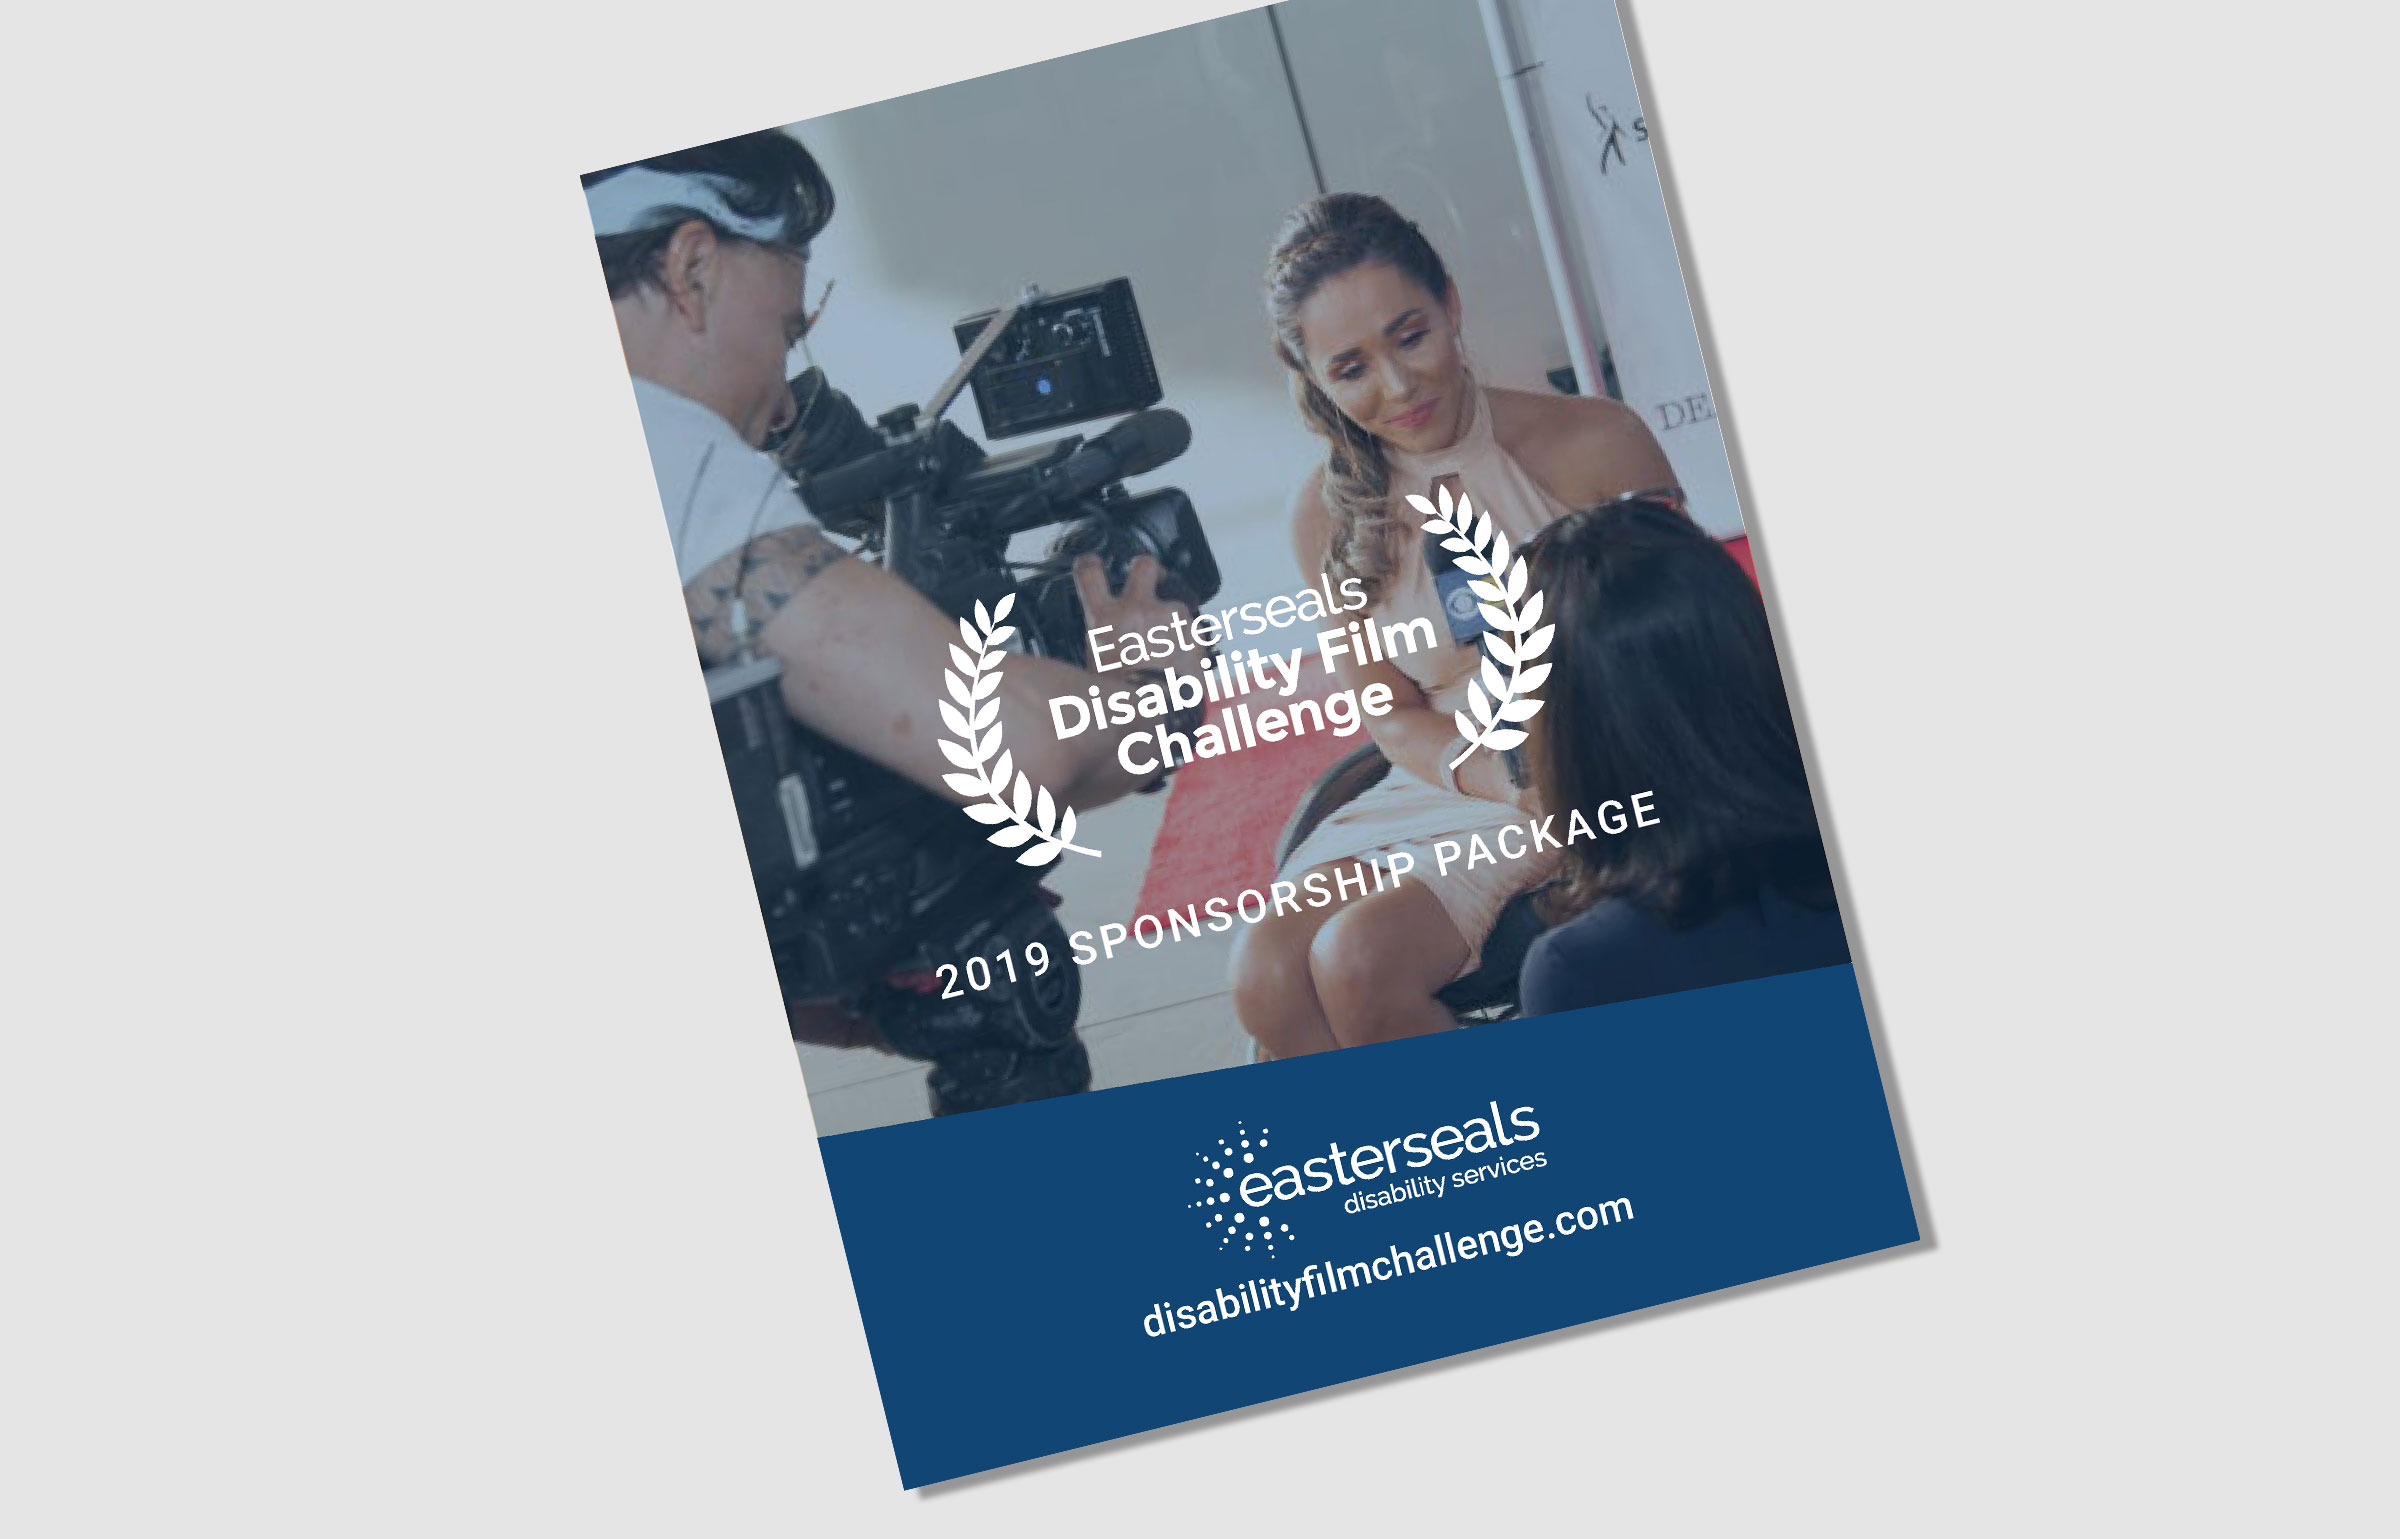 2019 Sponsorship package cover image of a reporter interviewing a Disability Film Participant